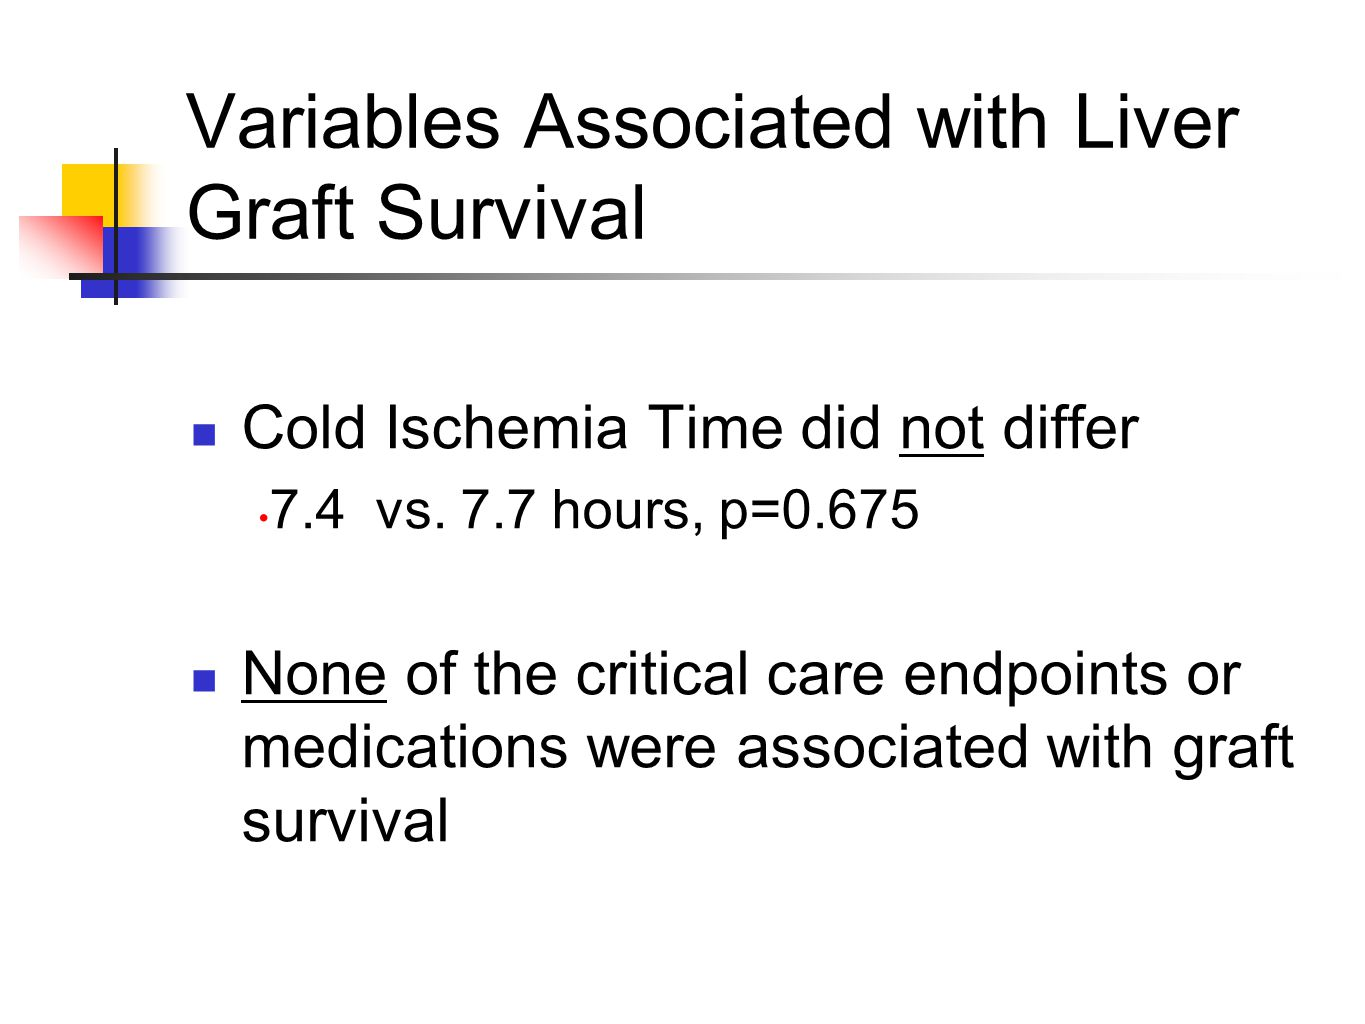 Variables Associated with Liver Graft Survival